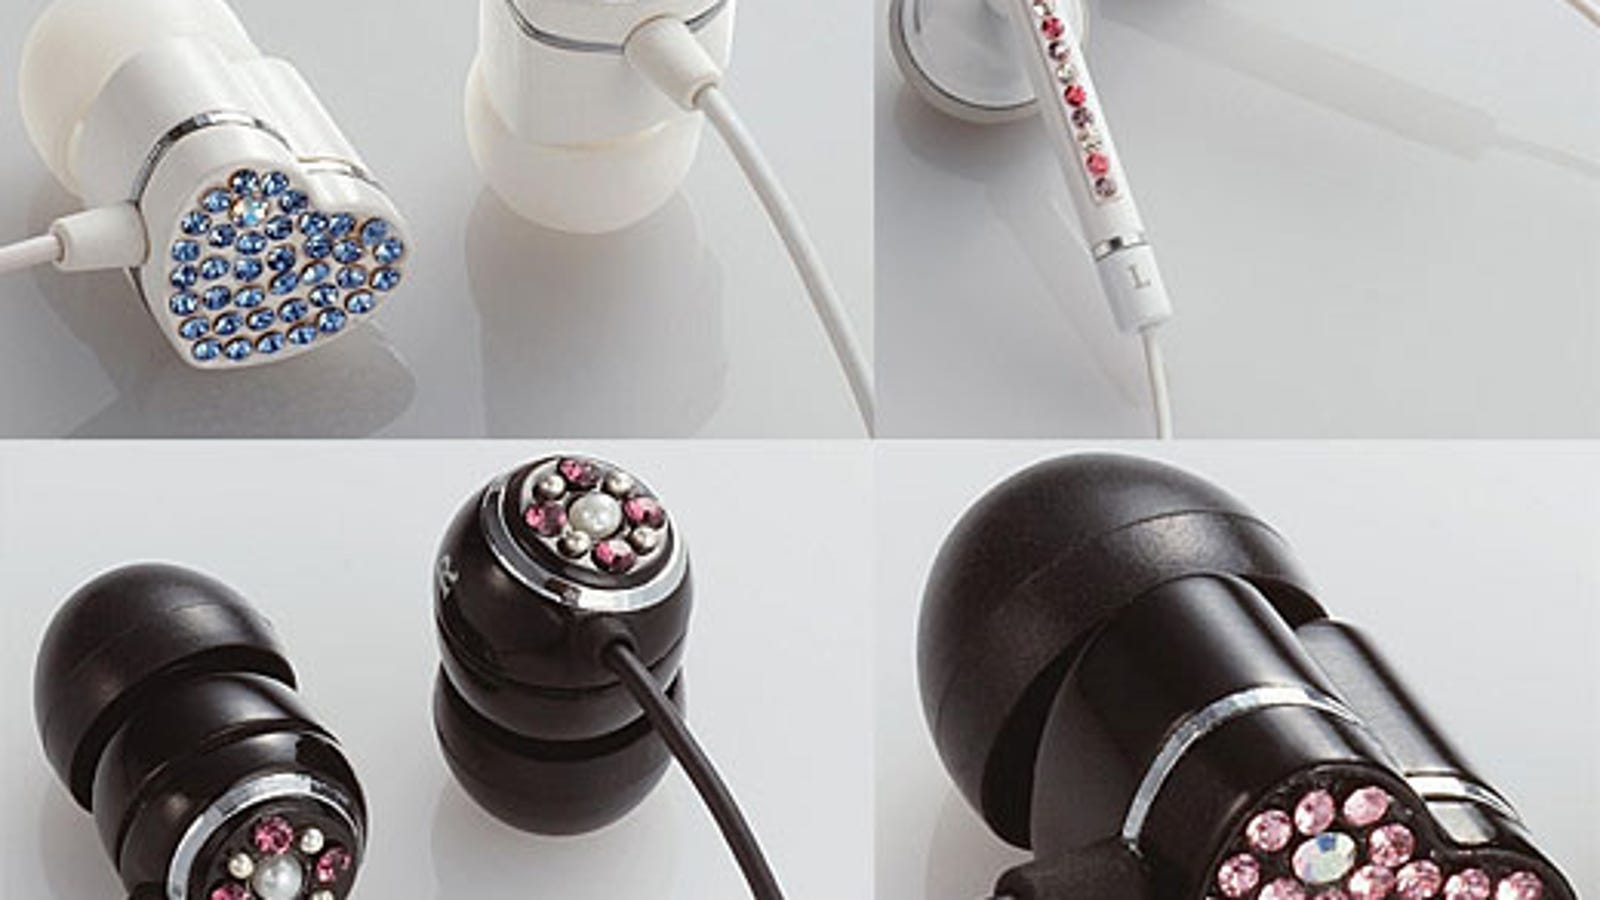 beats wireless earbuds headphones - Elecom Ear Drops Earphones: Cheap Hookers Listen to Music, Too